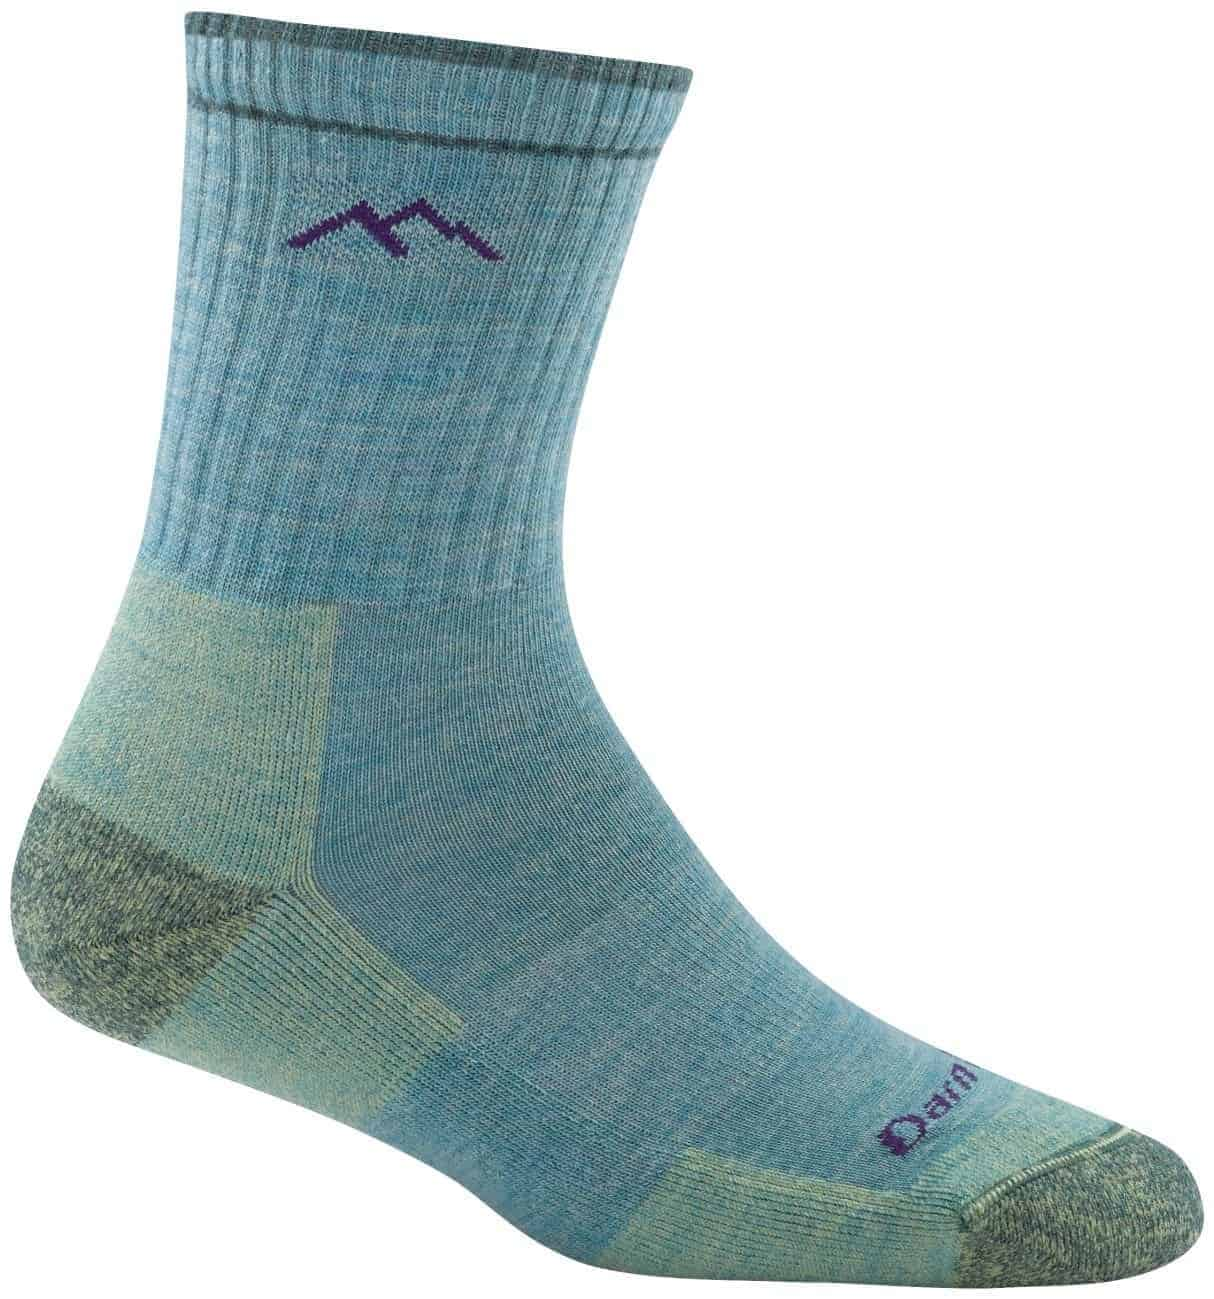 Hiking Gift Idea: Darn Tough Socks